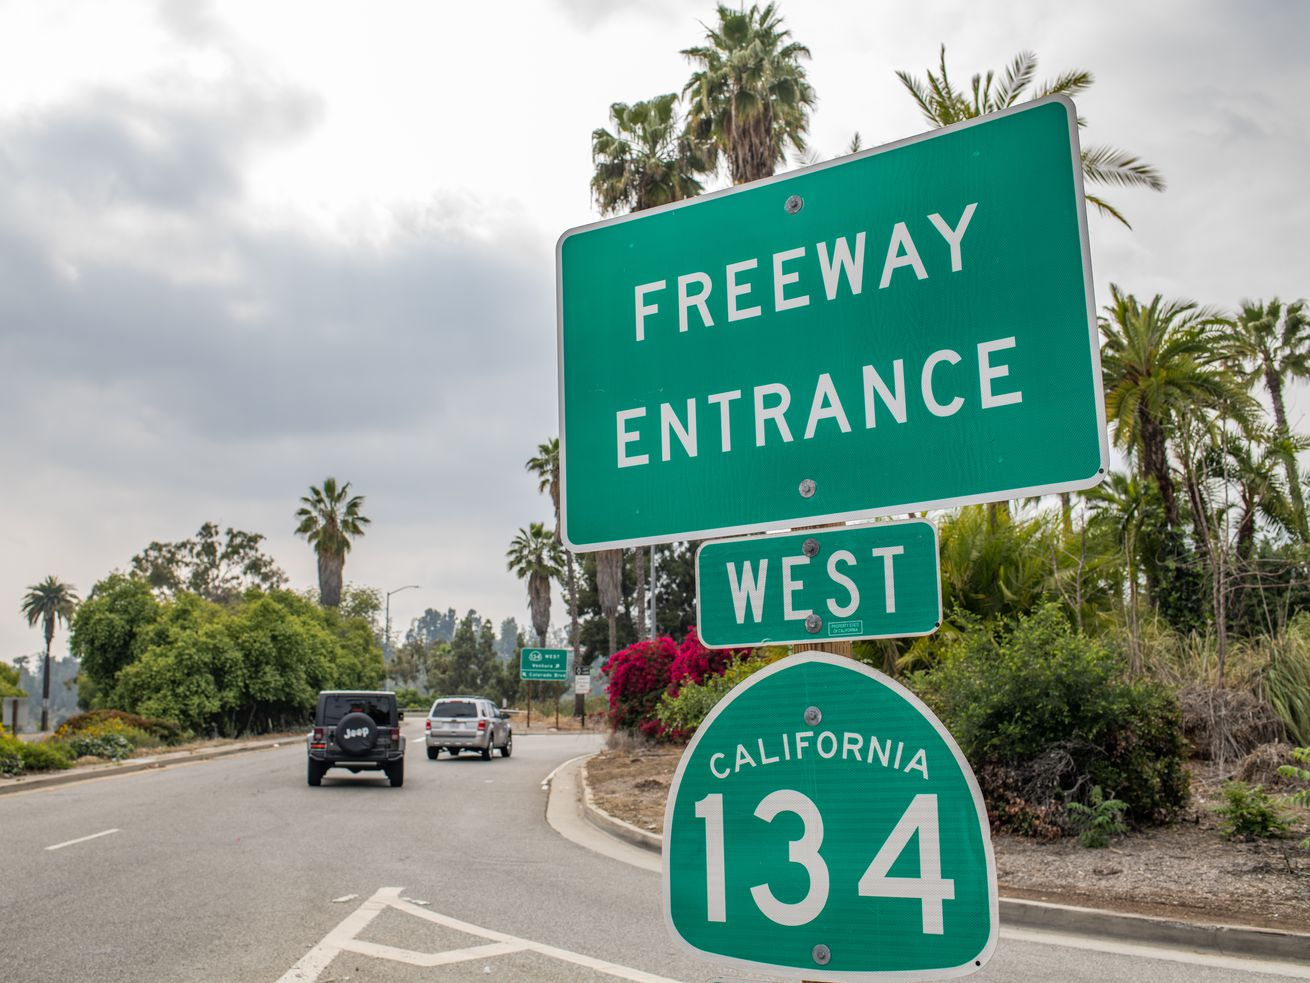 The California legislature last year approved renaming part of the 134 freeway after Obama.